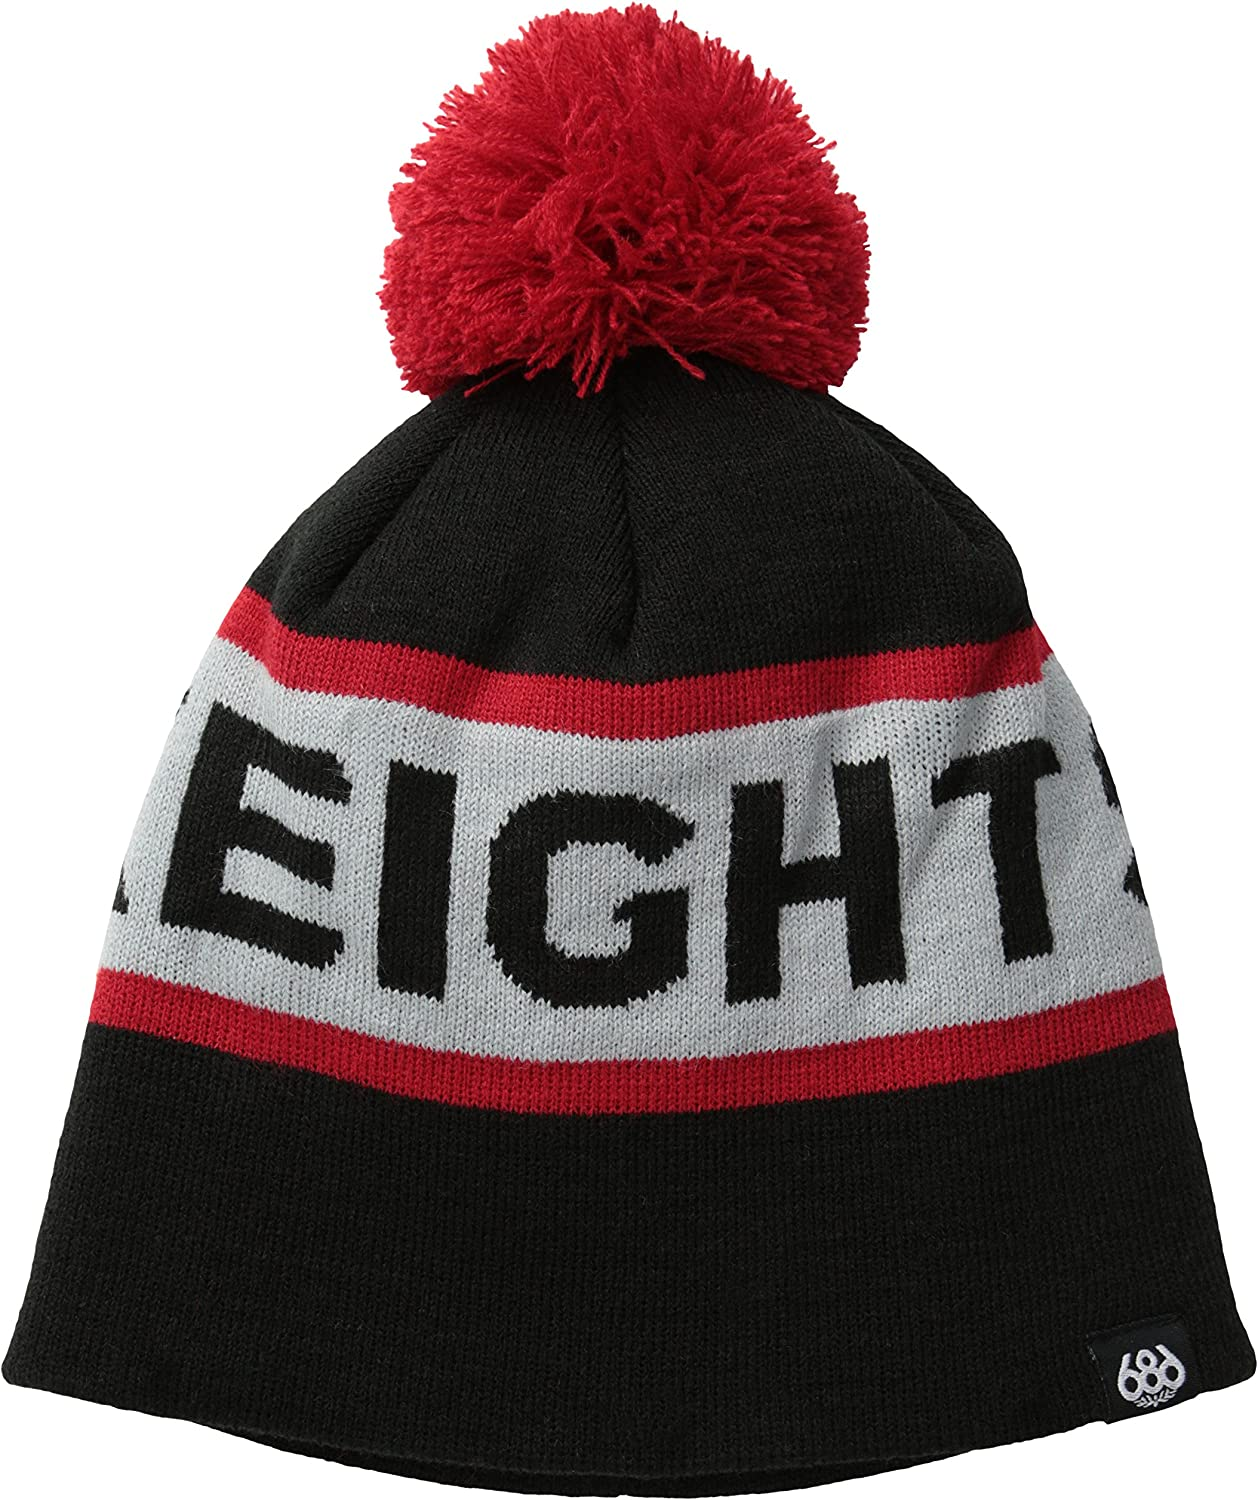 low-pricing 686 Boys Banner Beanie Recommendation